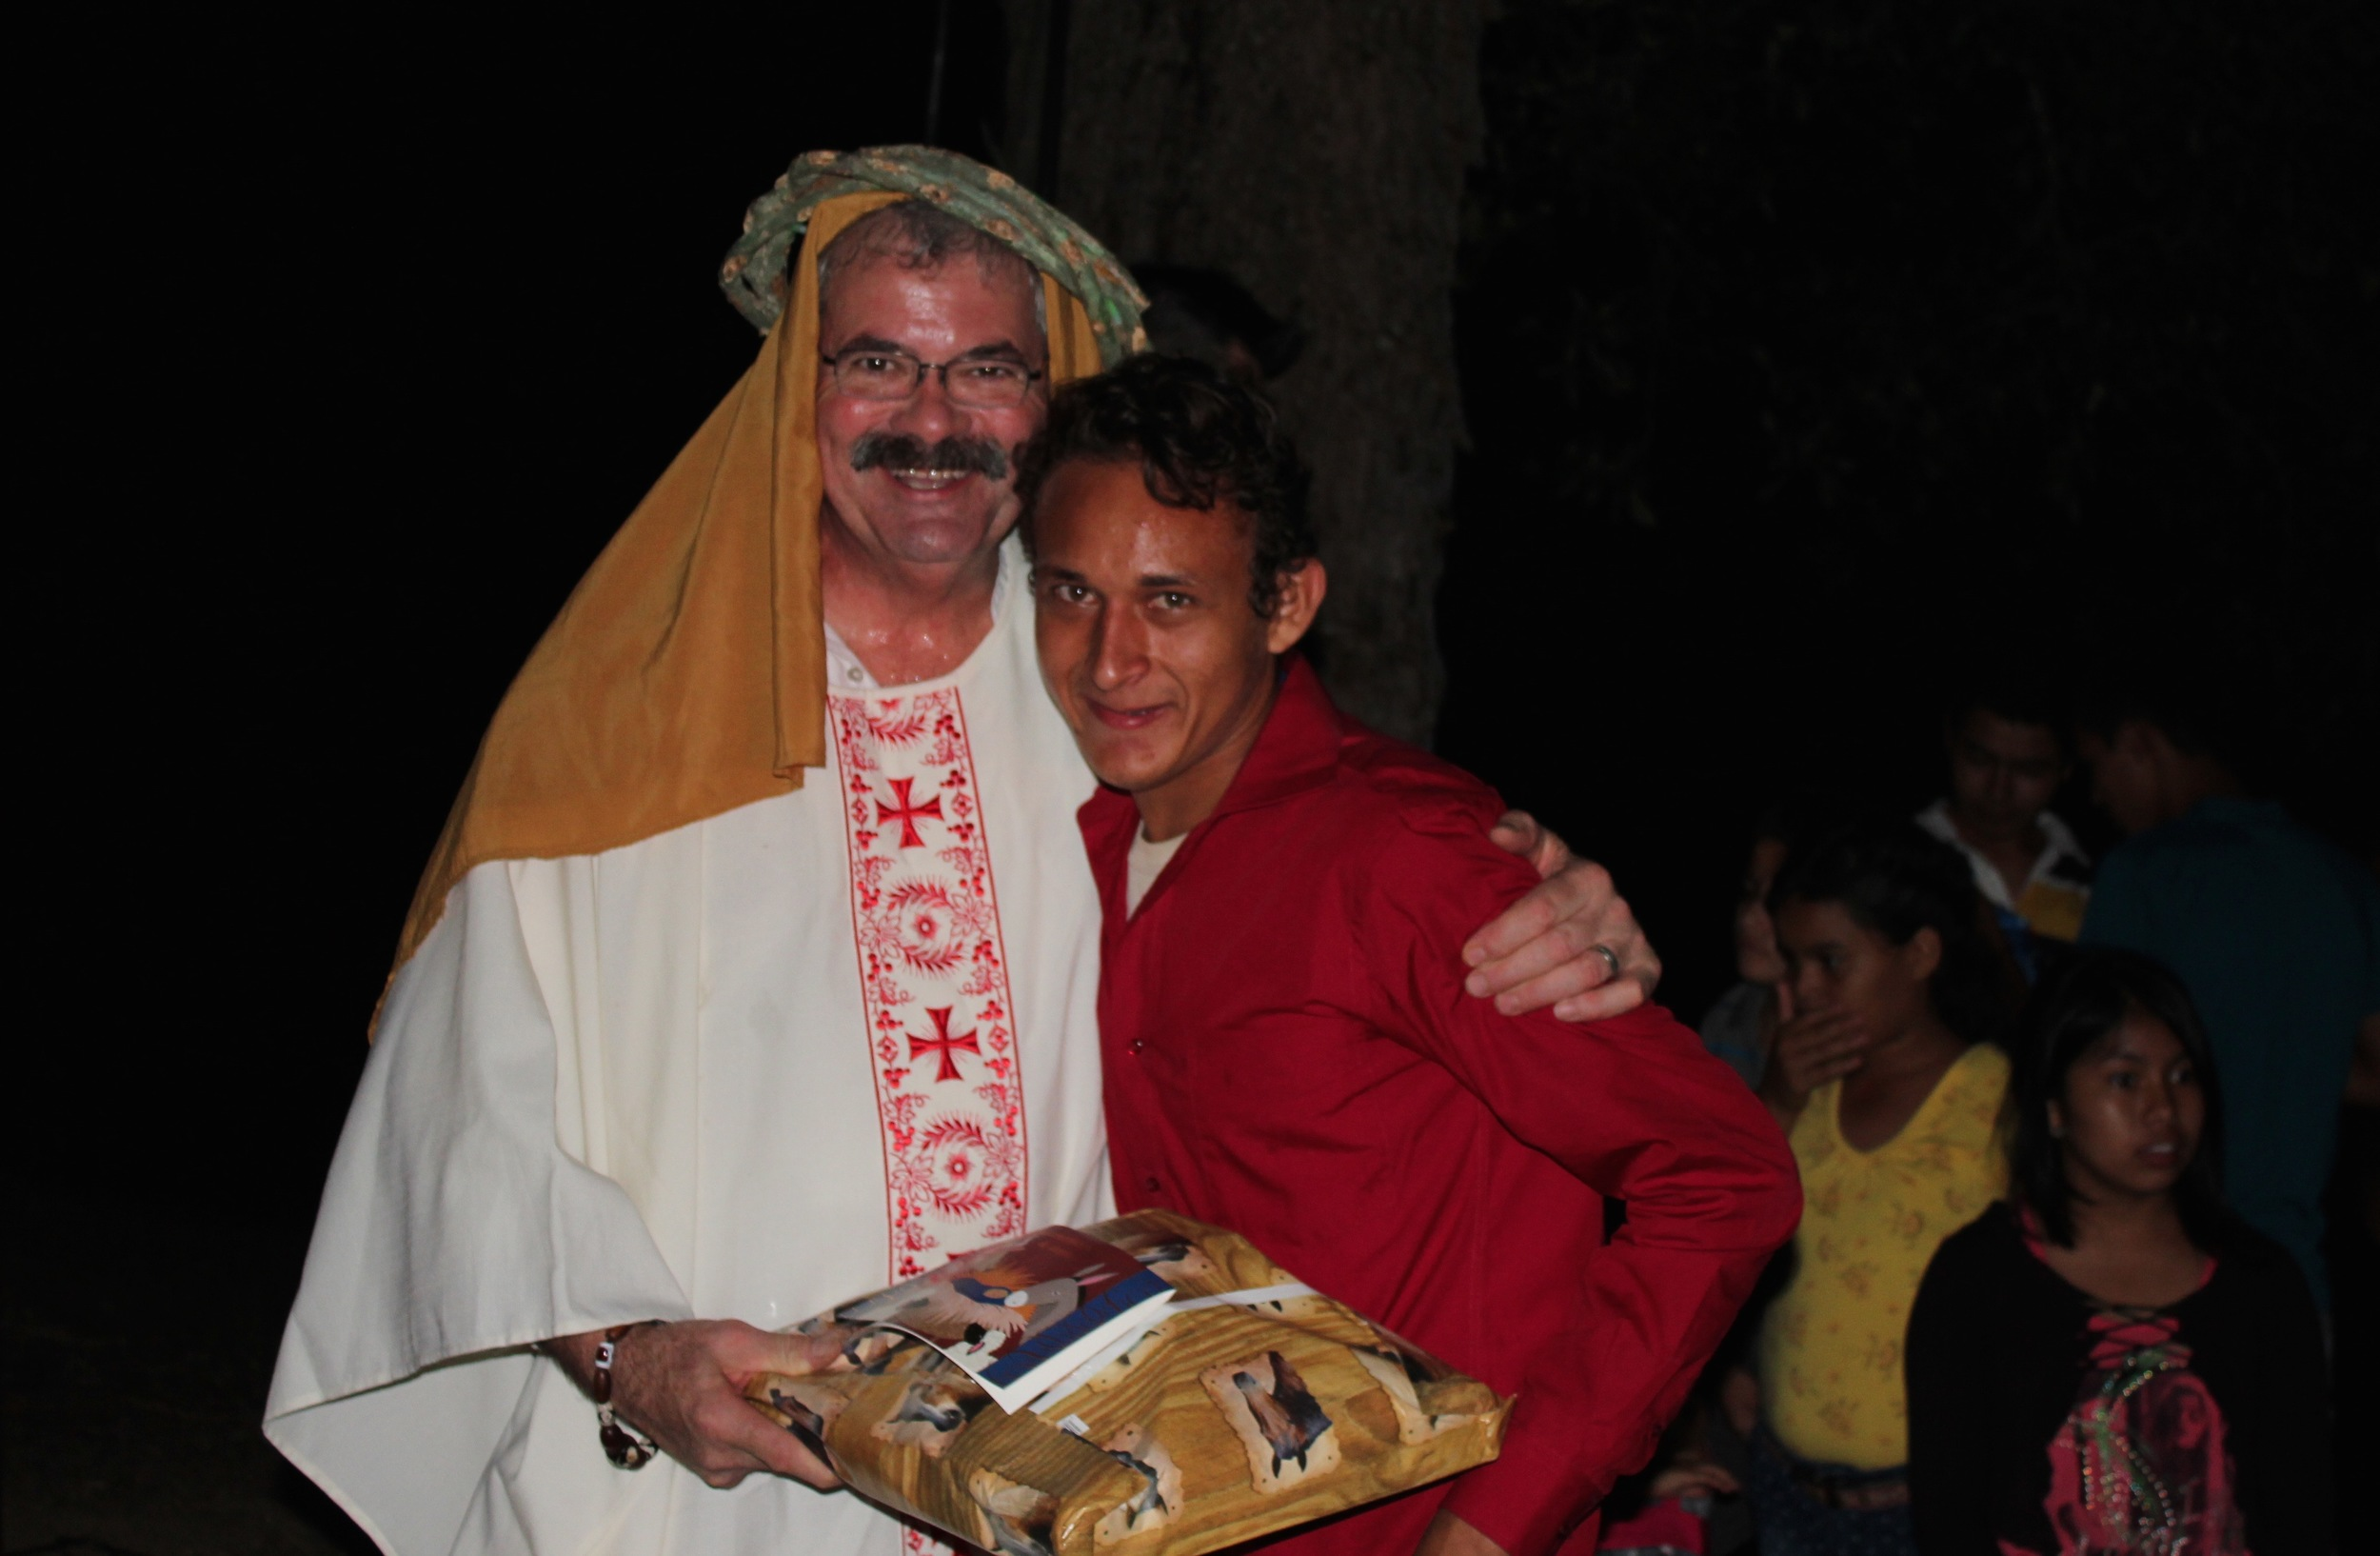 Melvin receiving his present on Three Kings Day (January 6th) from one of the 'Three Kings,' board member Rob Fenza.